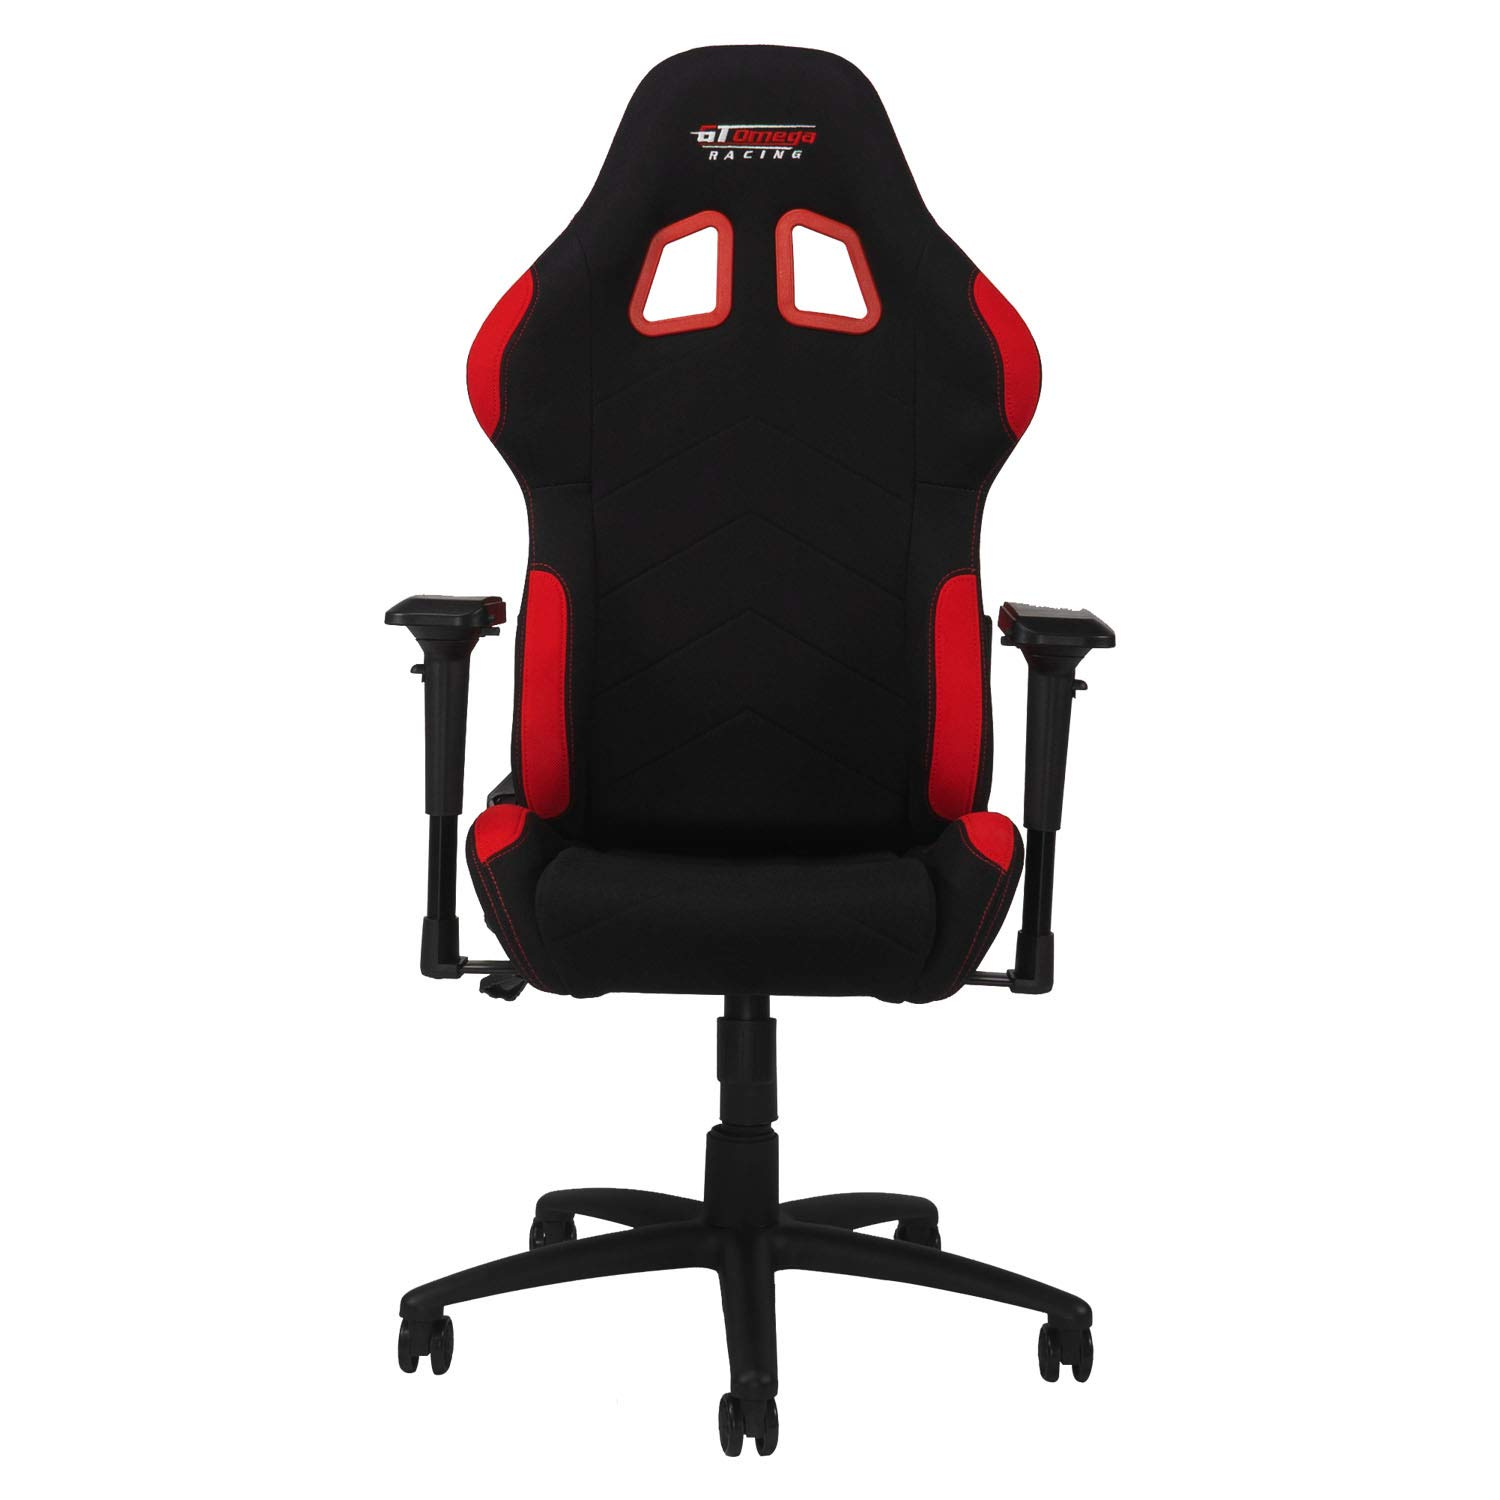 GT Omega PRO Racing Fabric Gaming Chair with Lumbar Support – Breathable Ergonomic Office Chair with 4D Adjustable Armrest Recliner – Esport Seat for Ultimate Gaming Experience – Black Next Red